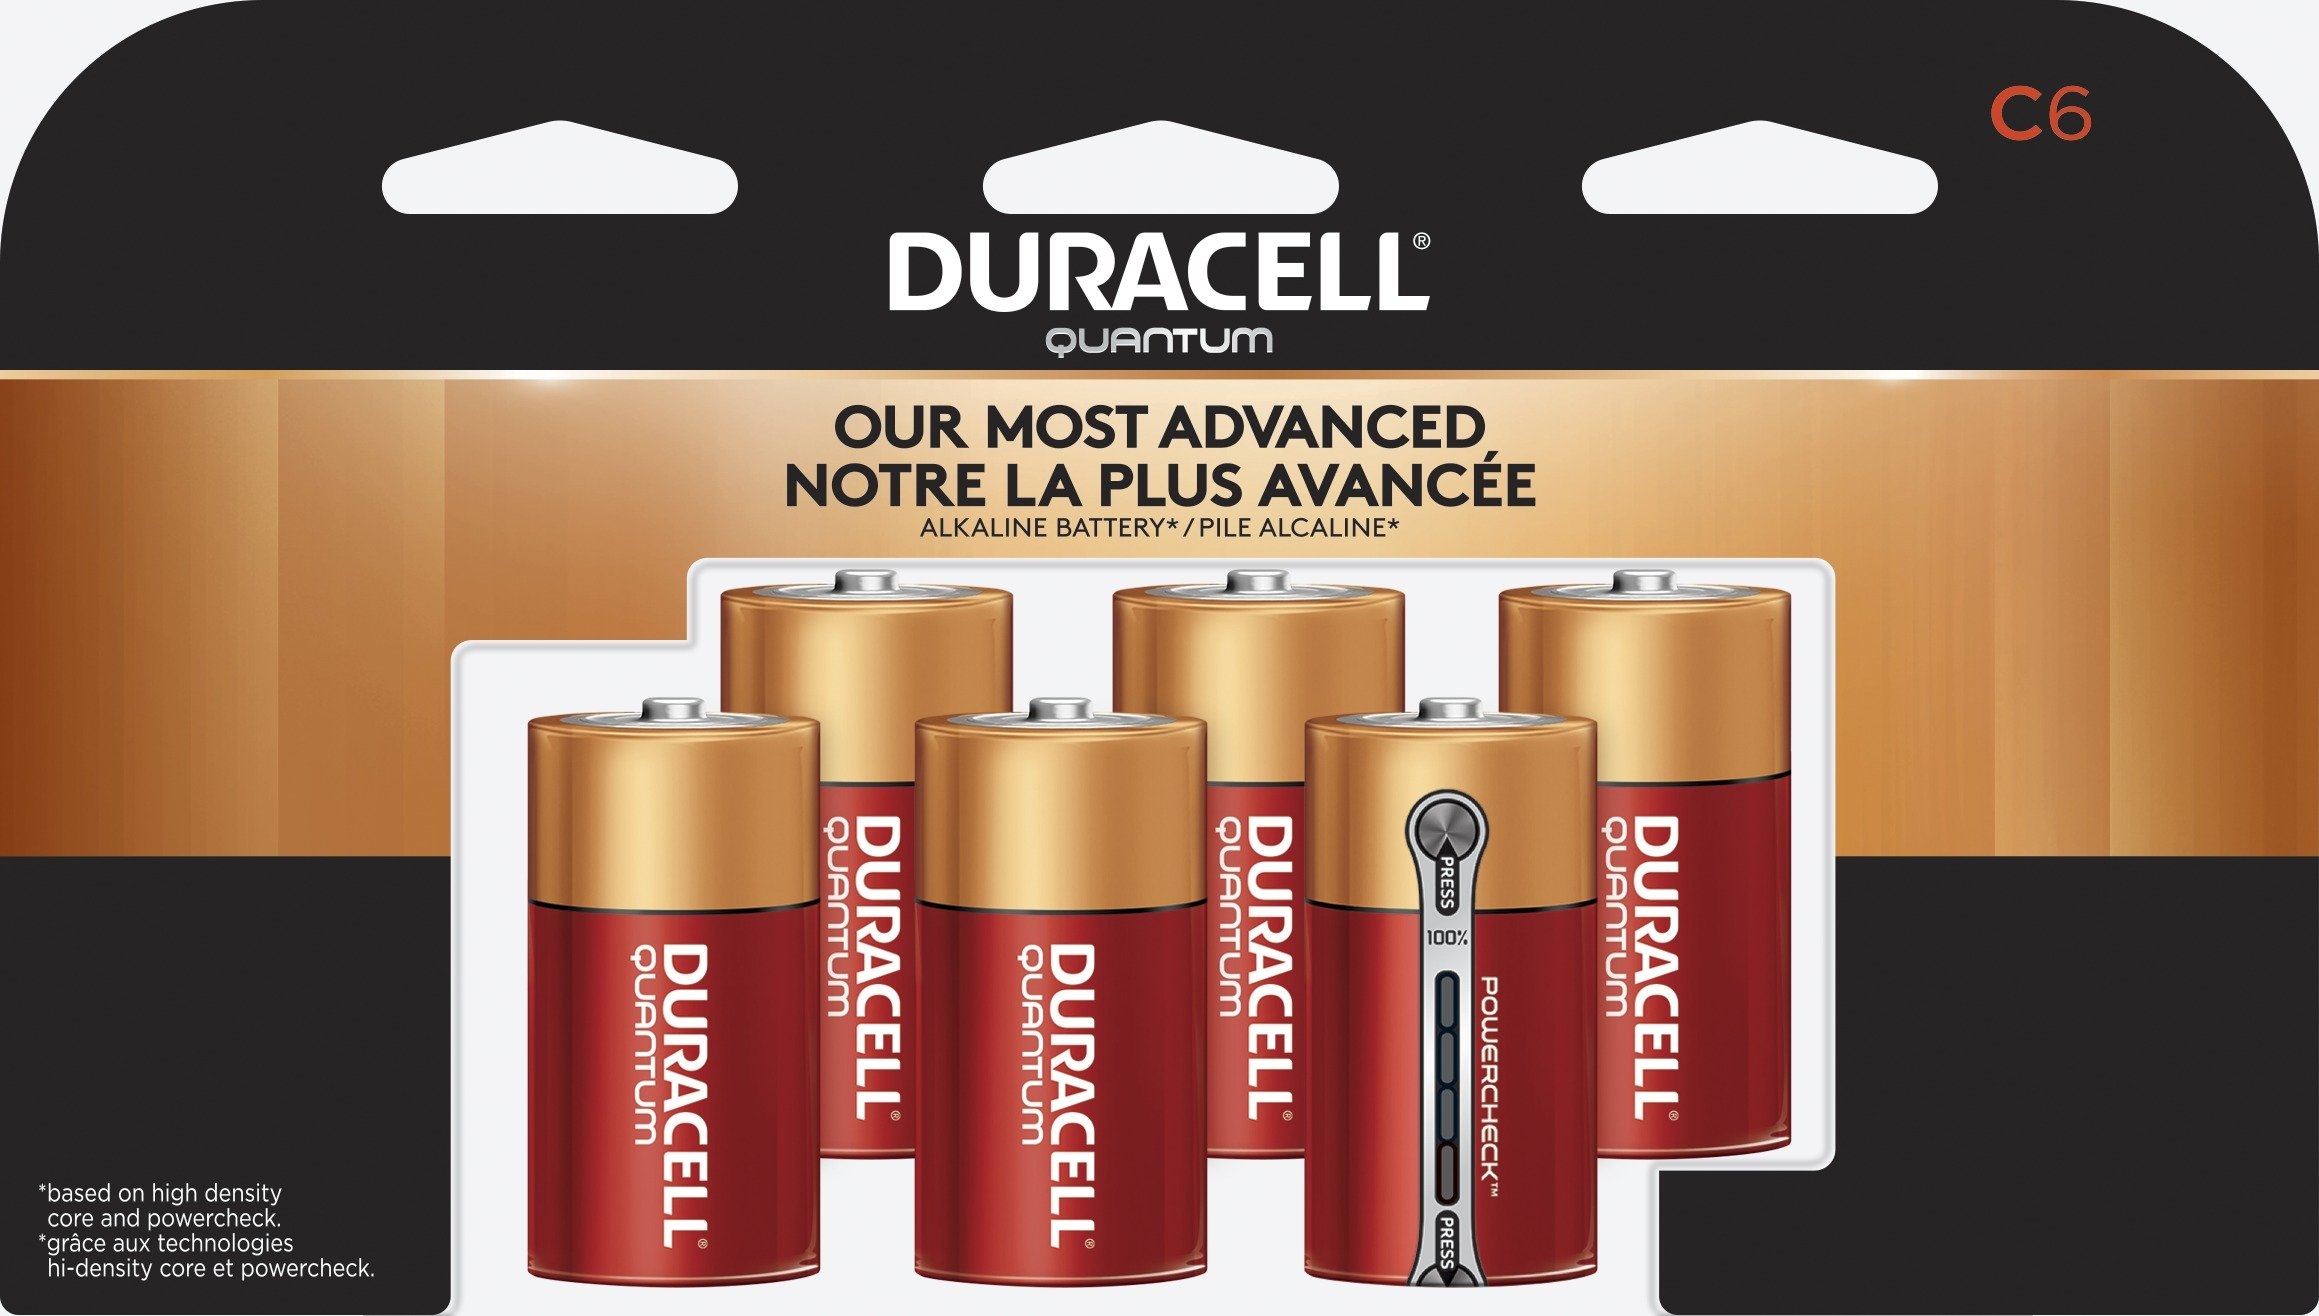 Duracell - Quantum C Alkaline Batteries - long lasting, all-purpose C battery for household and business - 6 count by Duracell